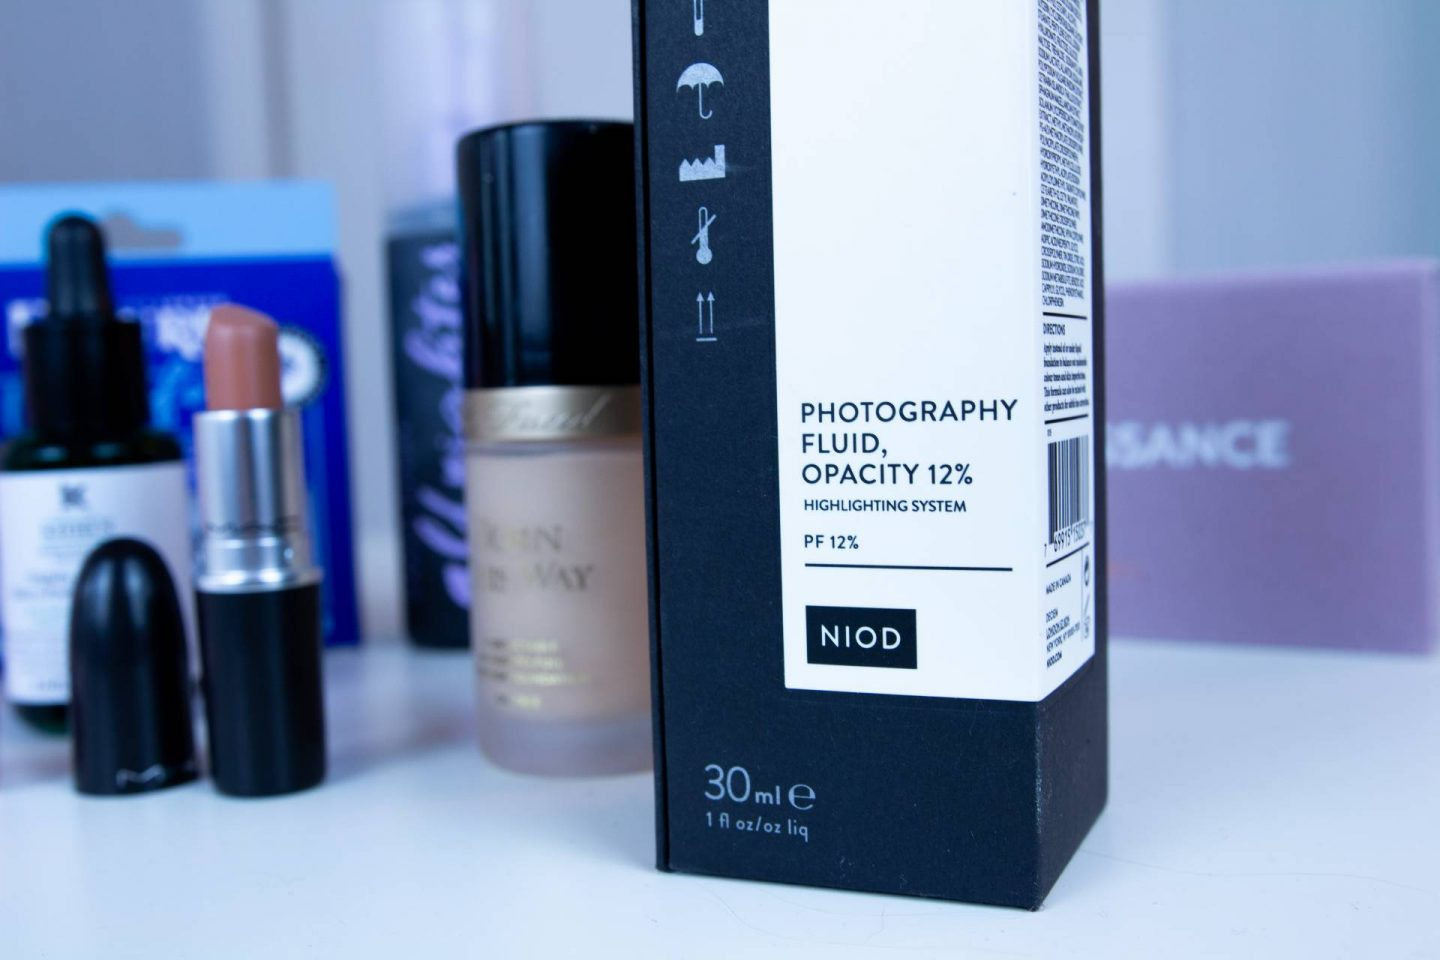 NIOD 12% Opacity Photography Fluid